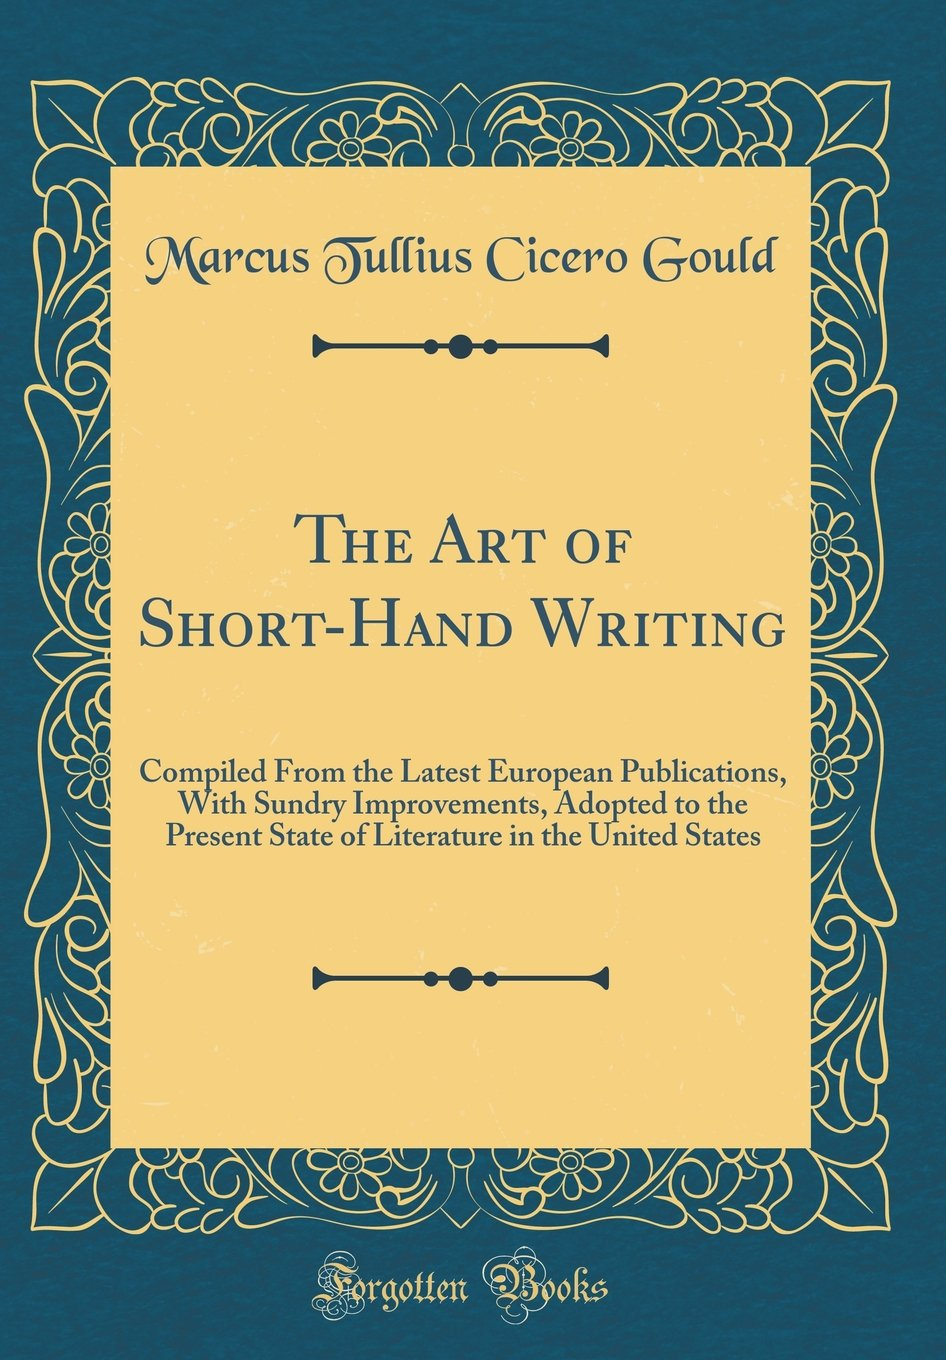 Download The Art of Short-Hand Writing: Compiled From the Latest European Publications, With Sundry Improvements, Adopted to the Present State of Literature in the United States (Classic Reprint) ebook